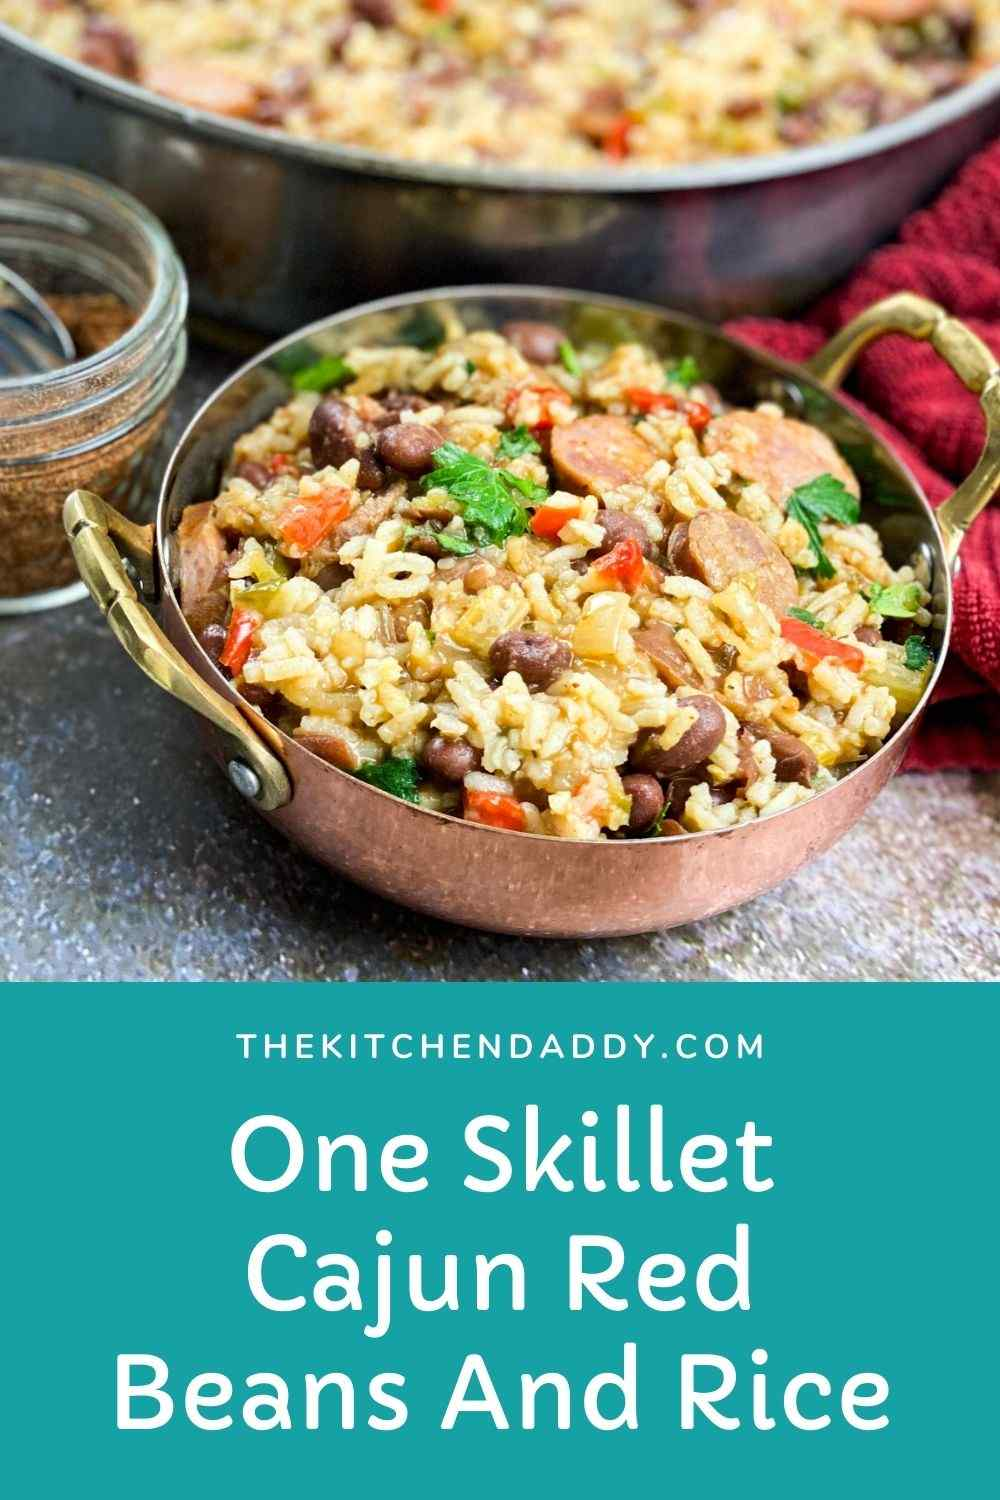 One Skillet Cajun Red Beans And Rice